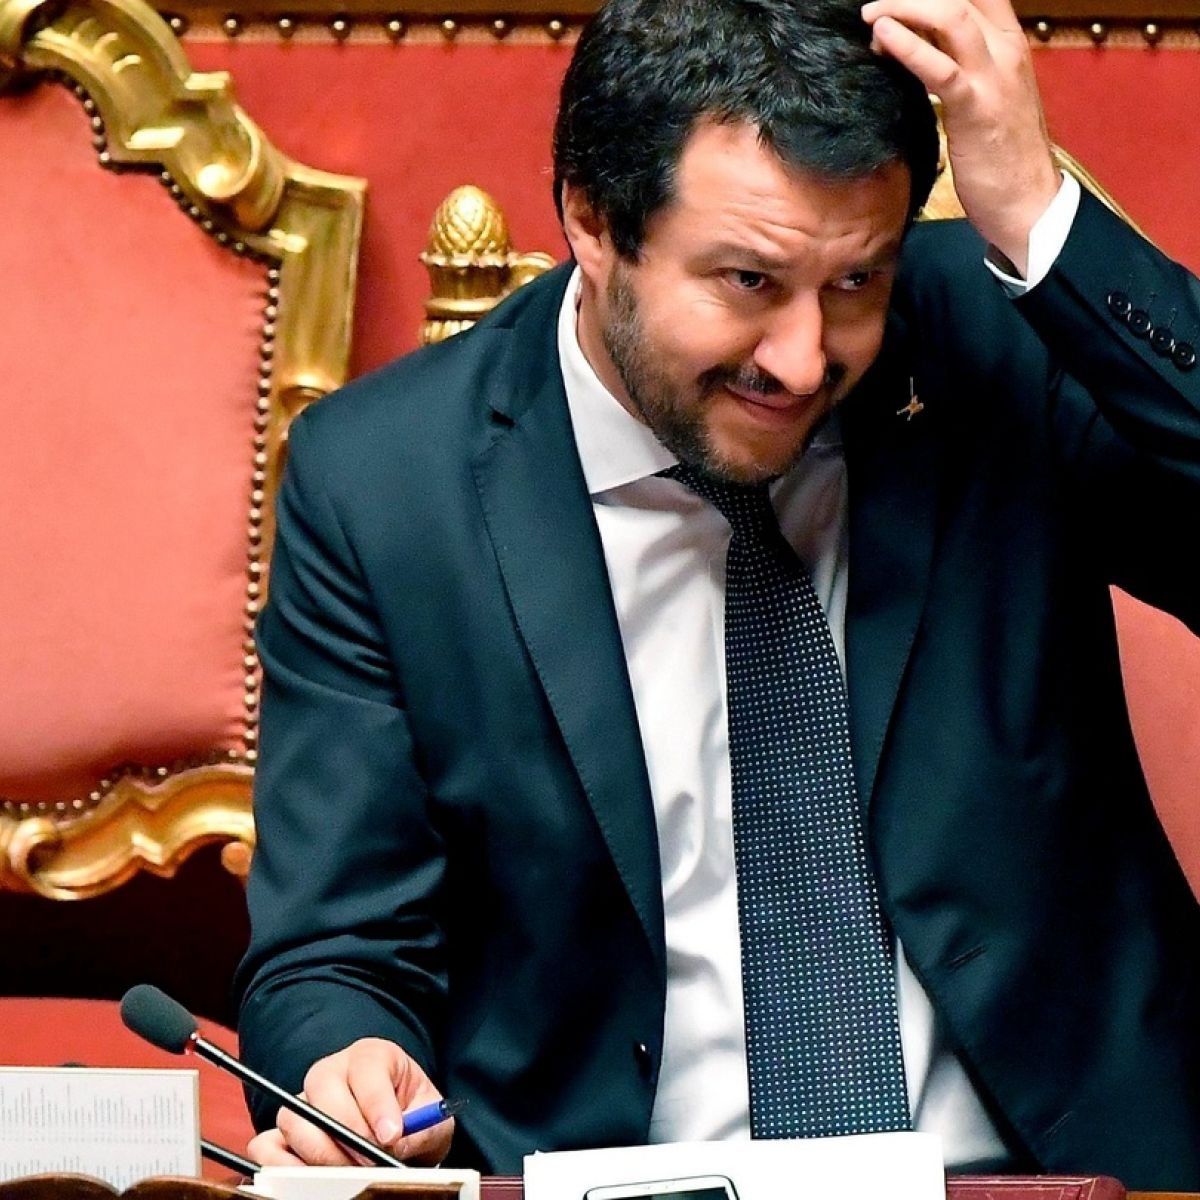 Italy and France in diplomatic standoff over immigration policies